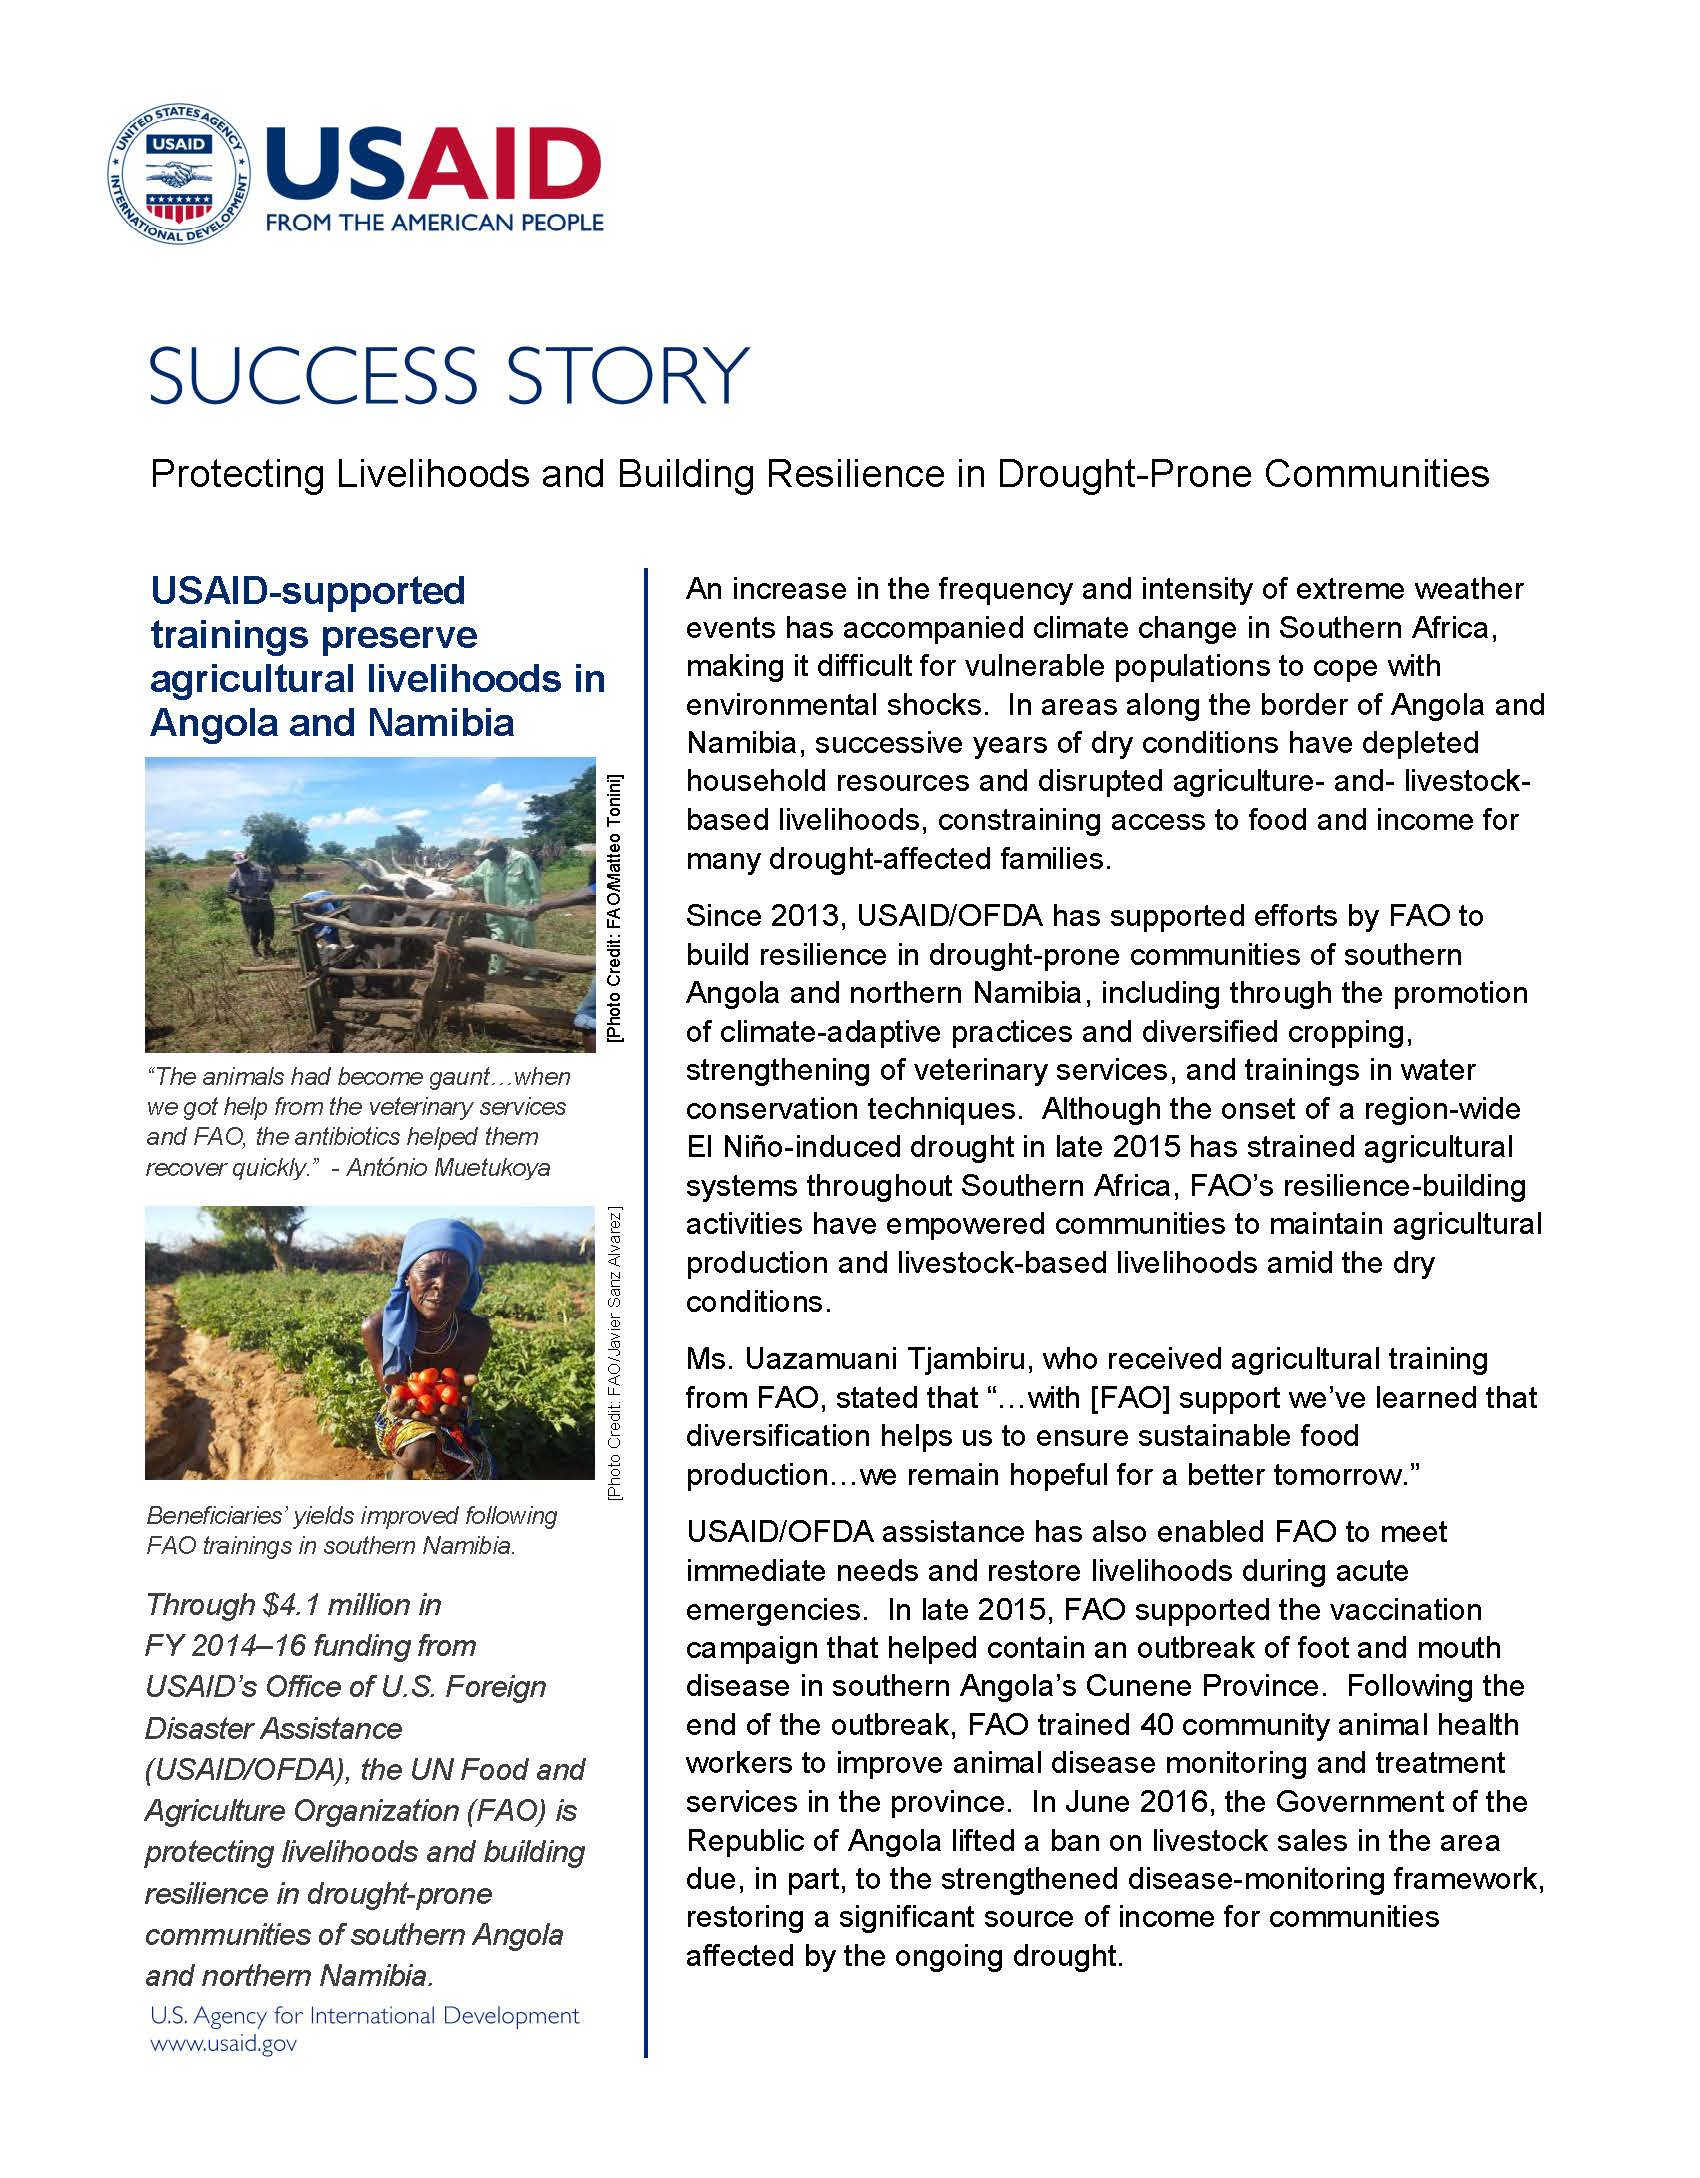 Protecting Livelihoods and Building Resilience in Drought-Prone Communities